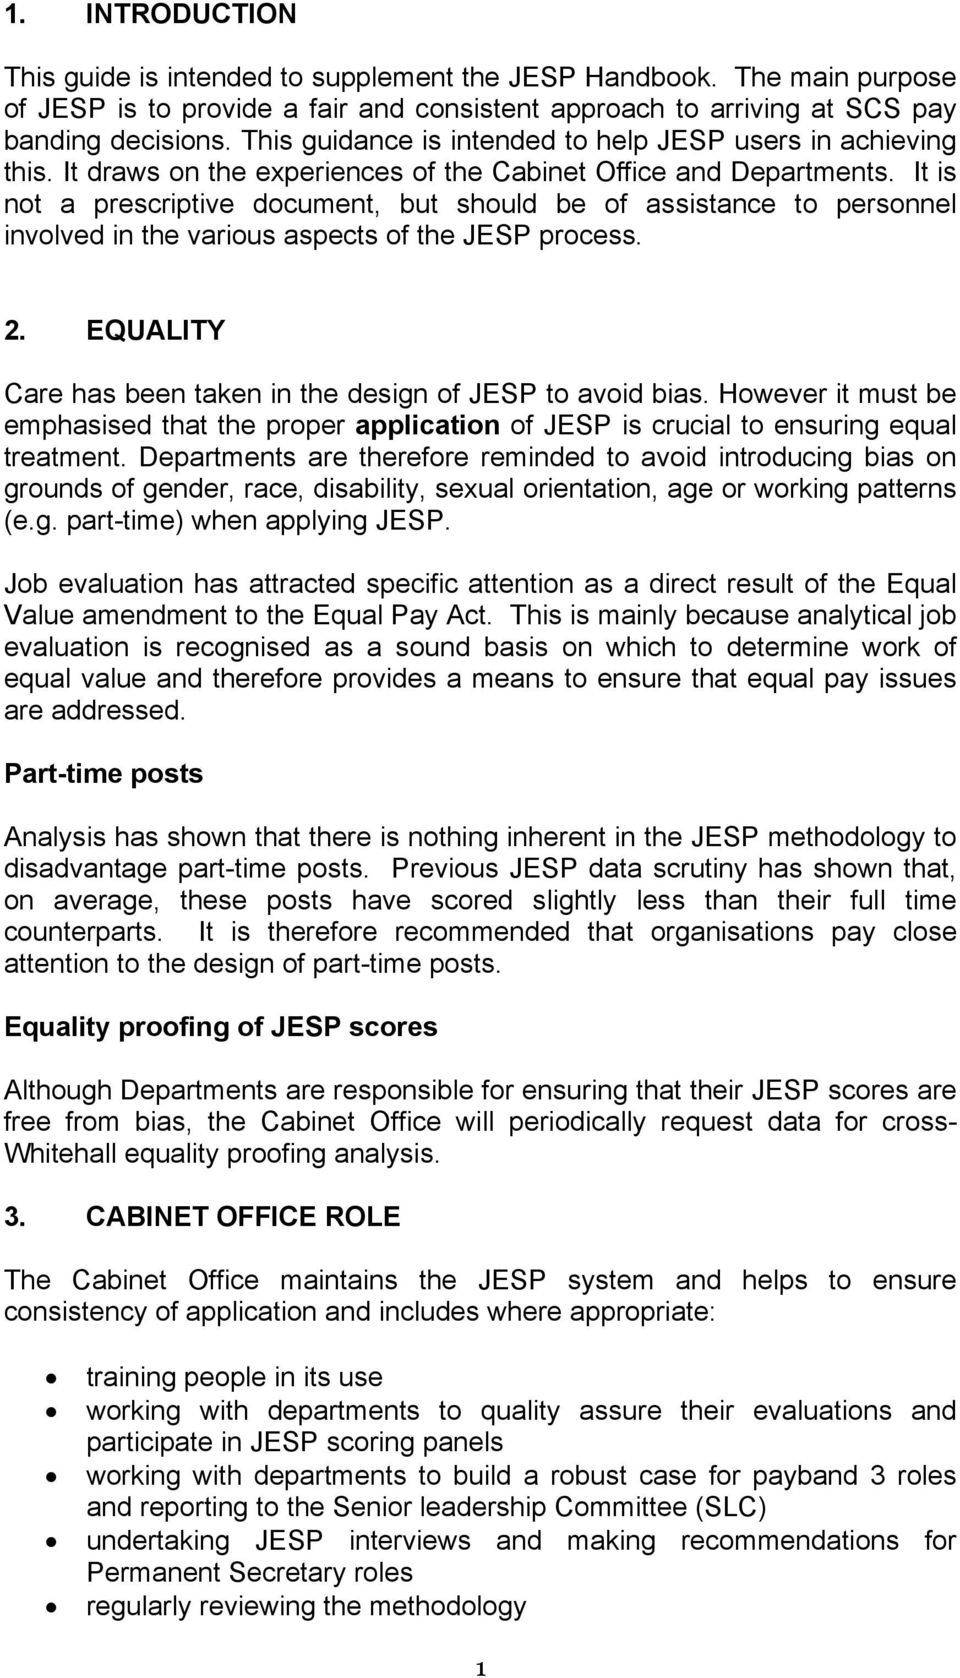 It is not a prescriptive document, but should be of assistance to personnel involved in the various aspects of the JESP process. 2. EQUALITY Care has been taken in the design of JESP to avoid bias.